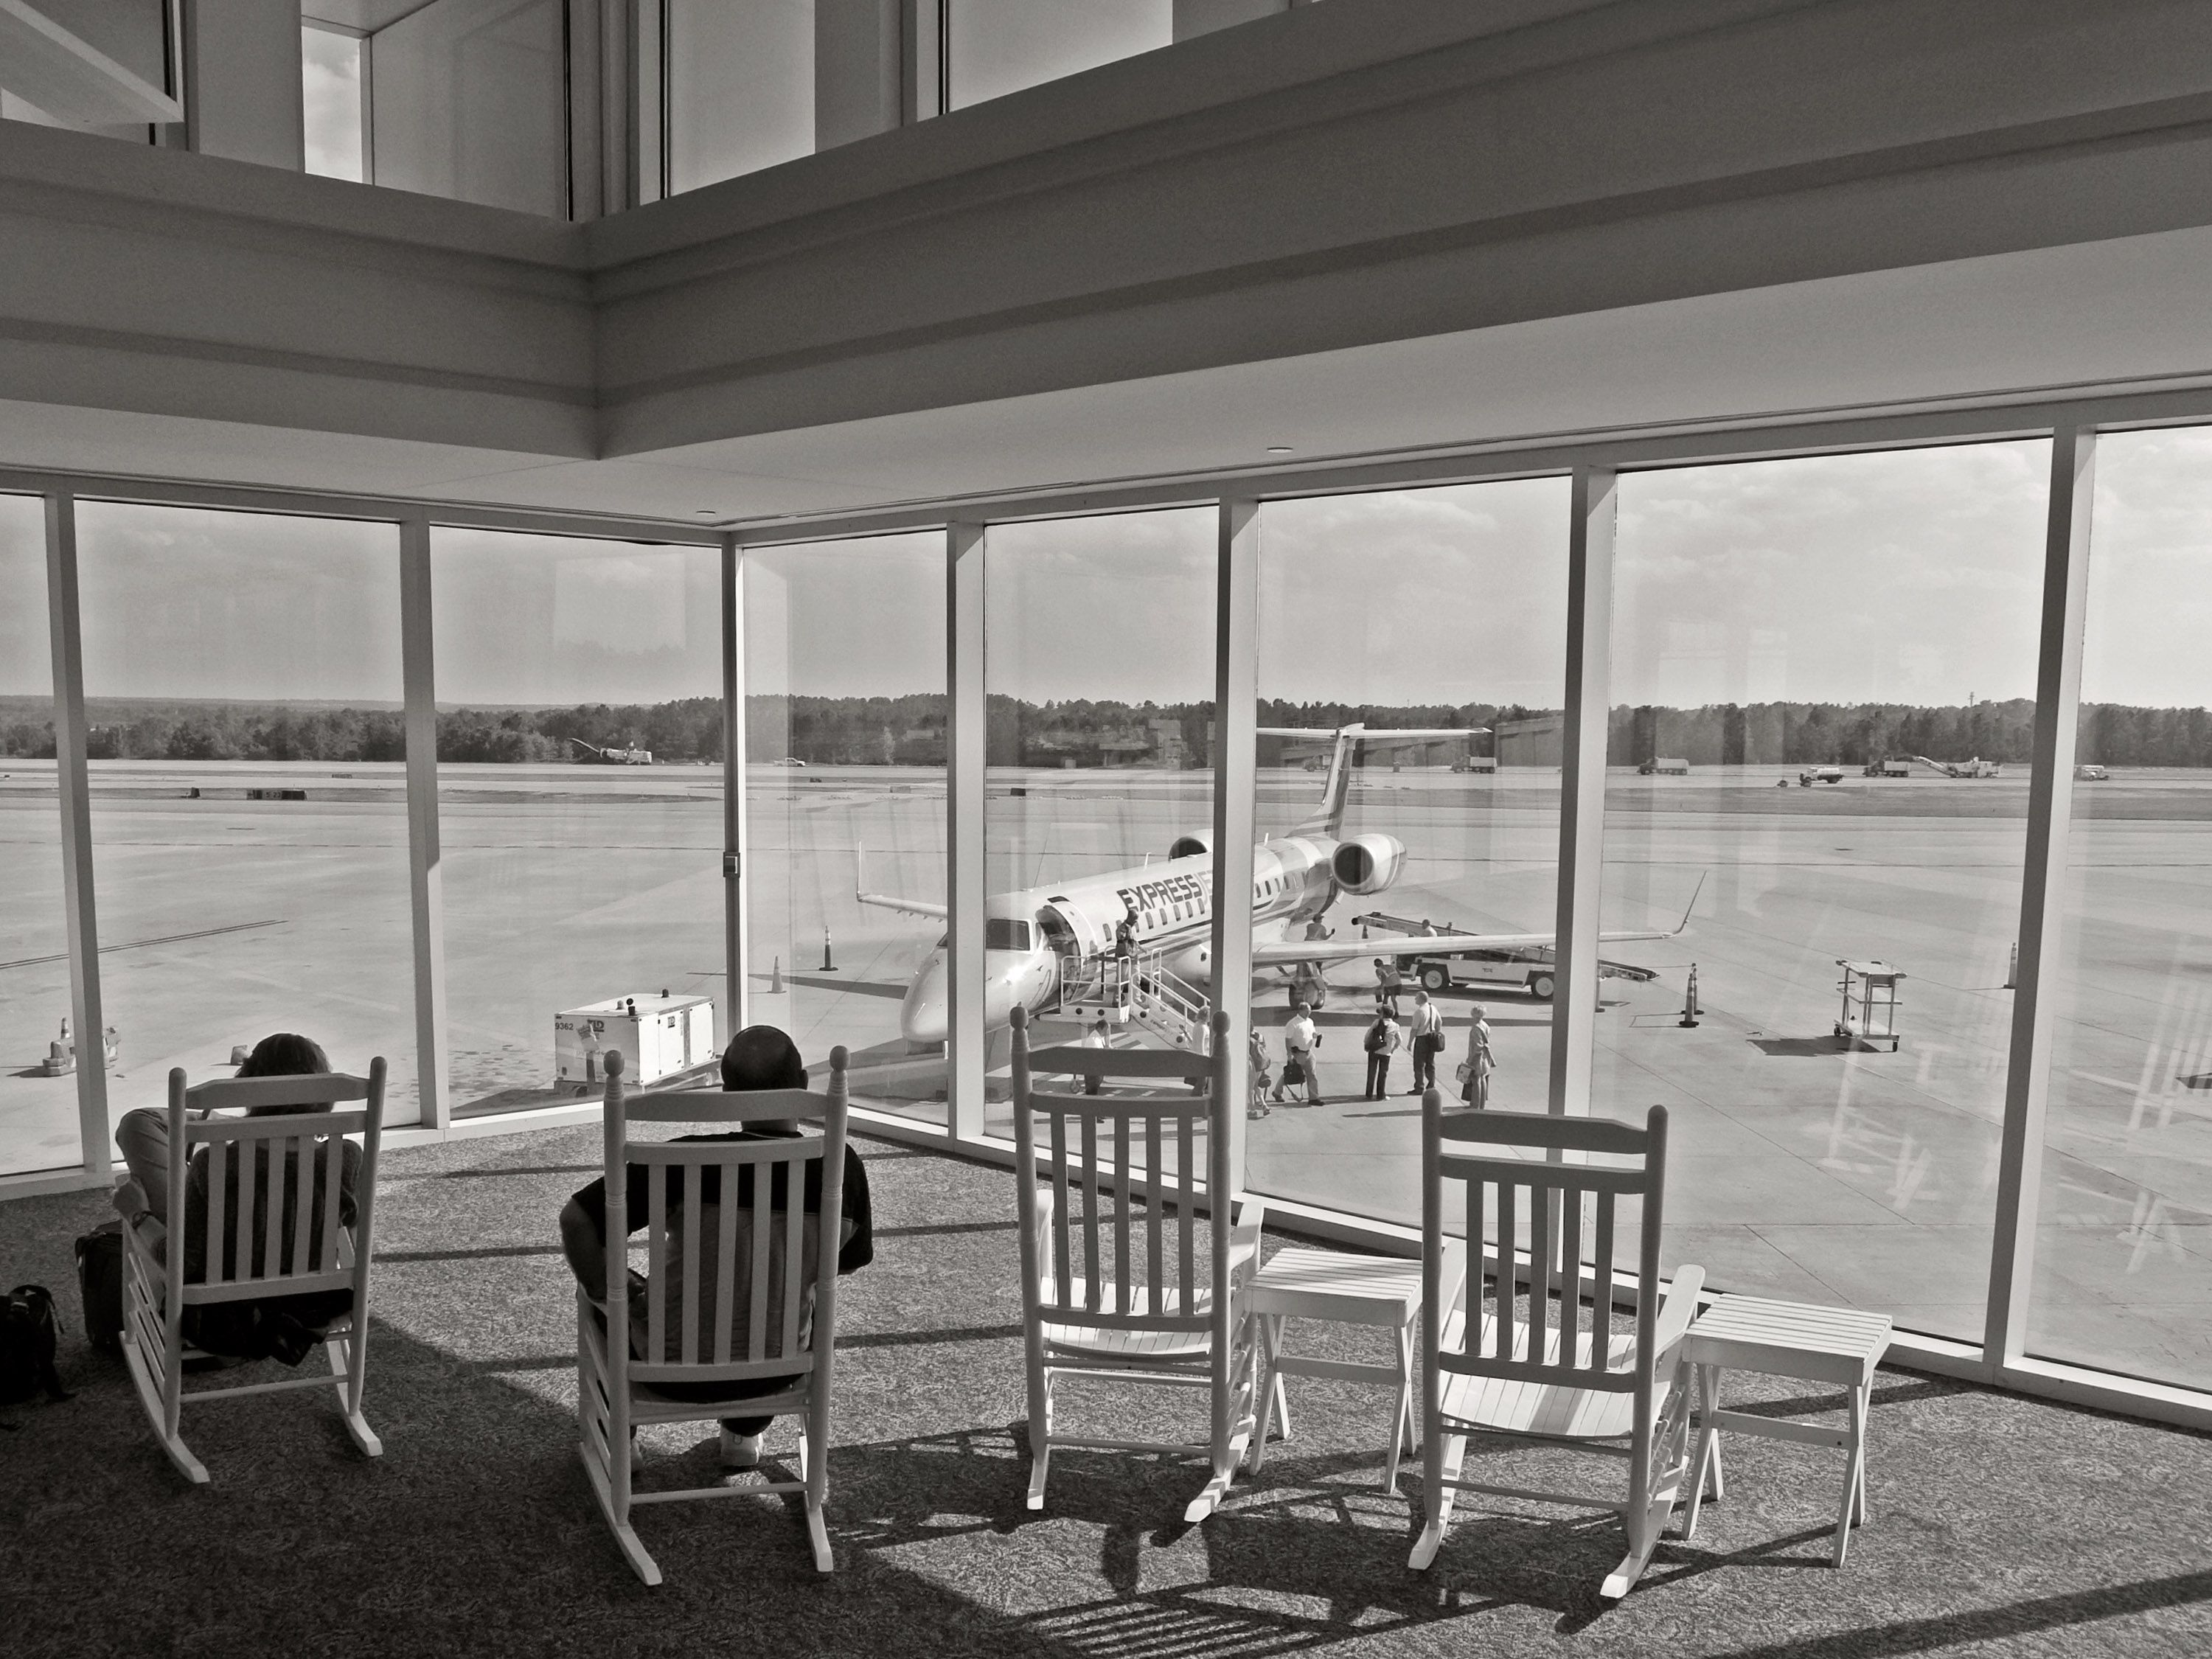 Here s why so many airports have rocking chairs